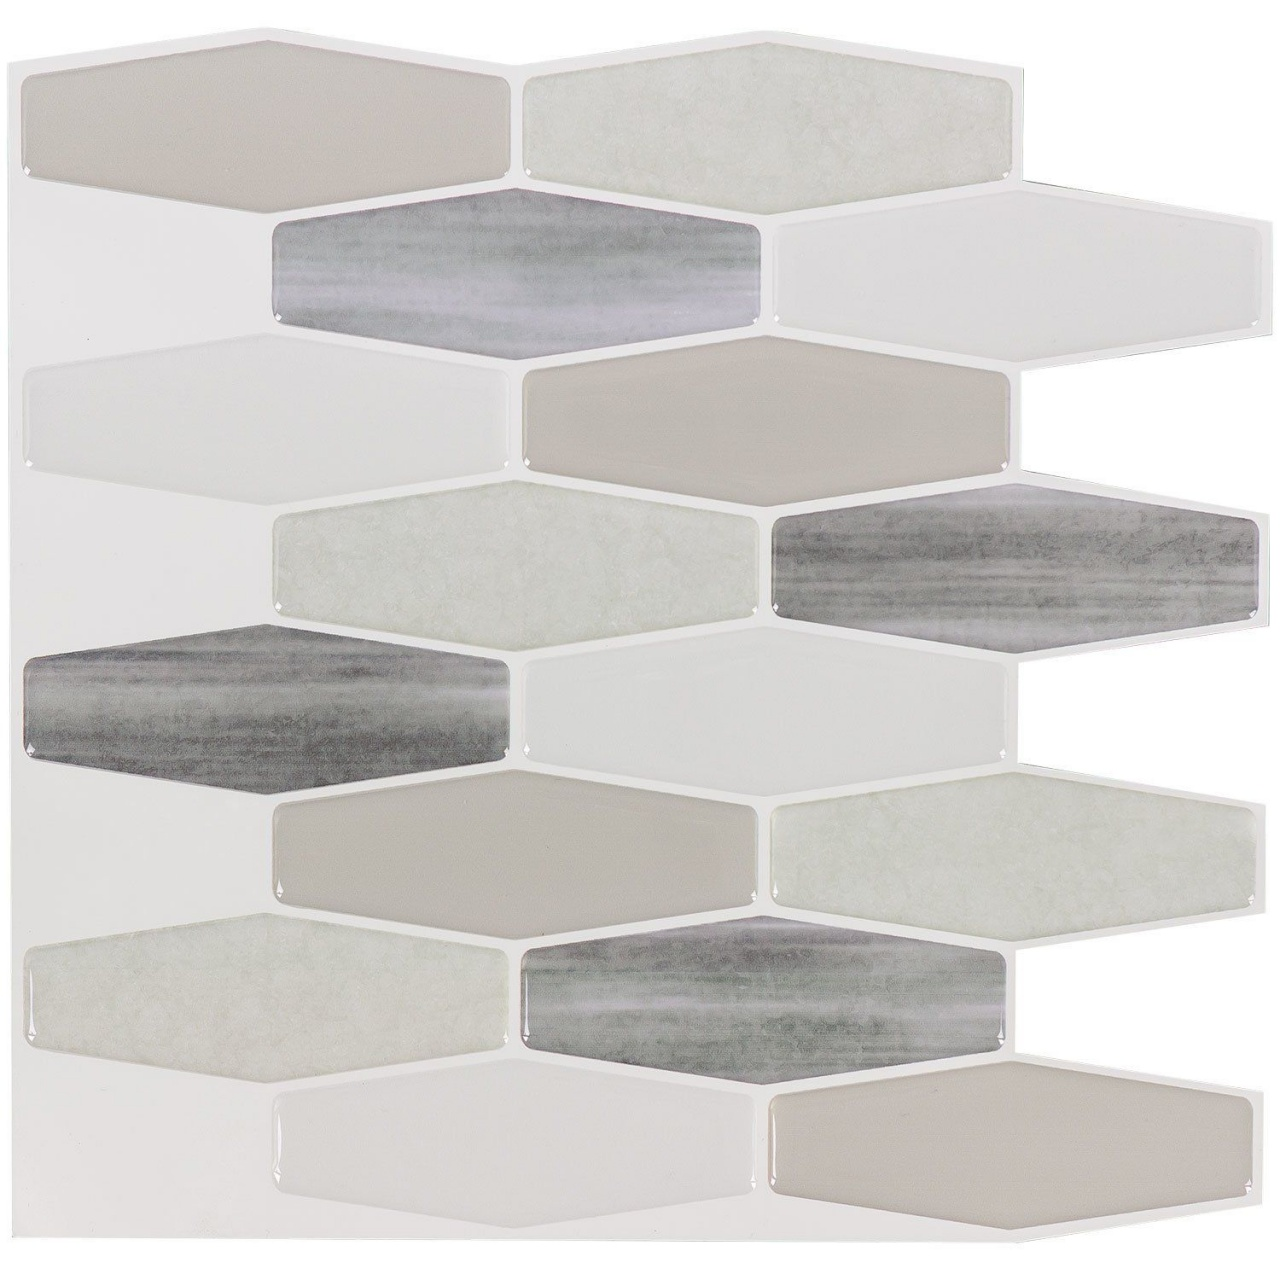 Vinyl Tiles Peel And Stick 10 X 10 Vinyl Peel Stick Mosaic Tile In Grey White Equalmarriagefl Vinyl From Vinyl Tiles Peel And Stick Pictures